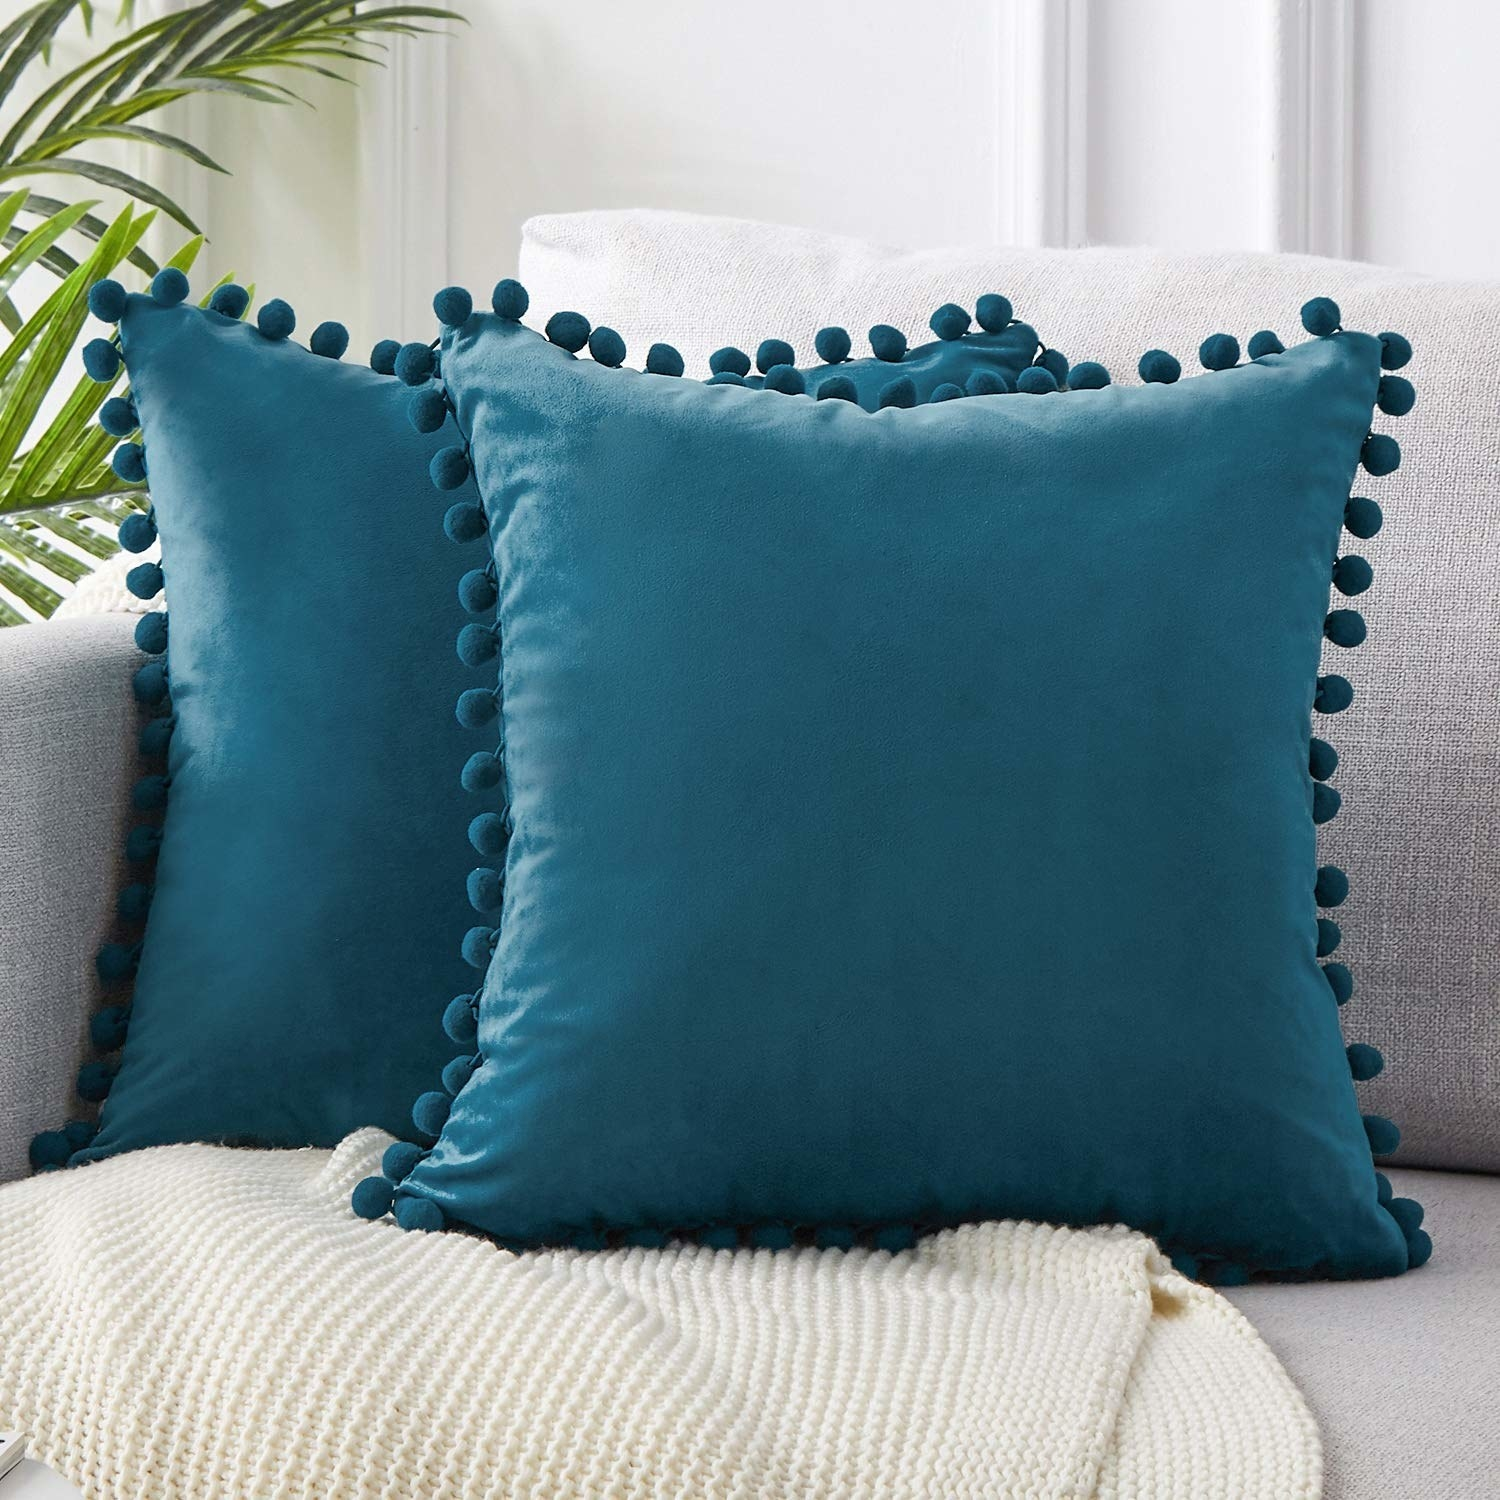 The velvet pillow covers in teal with decorative pom-poms